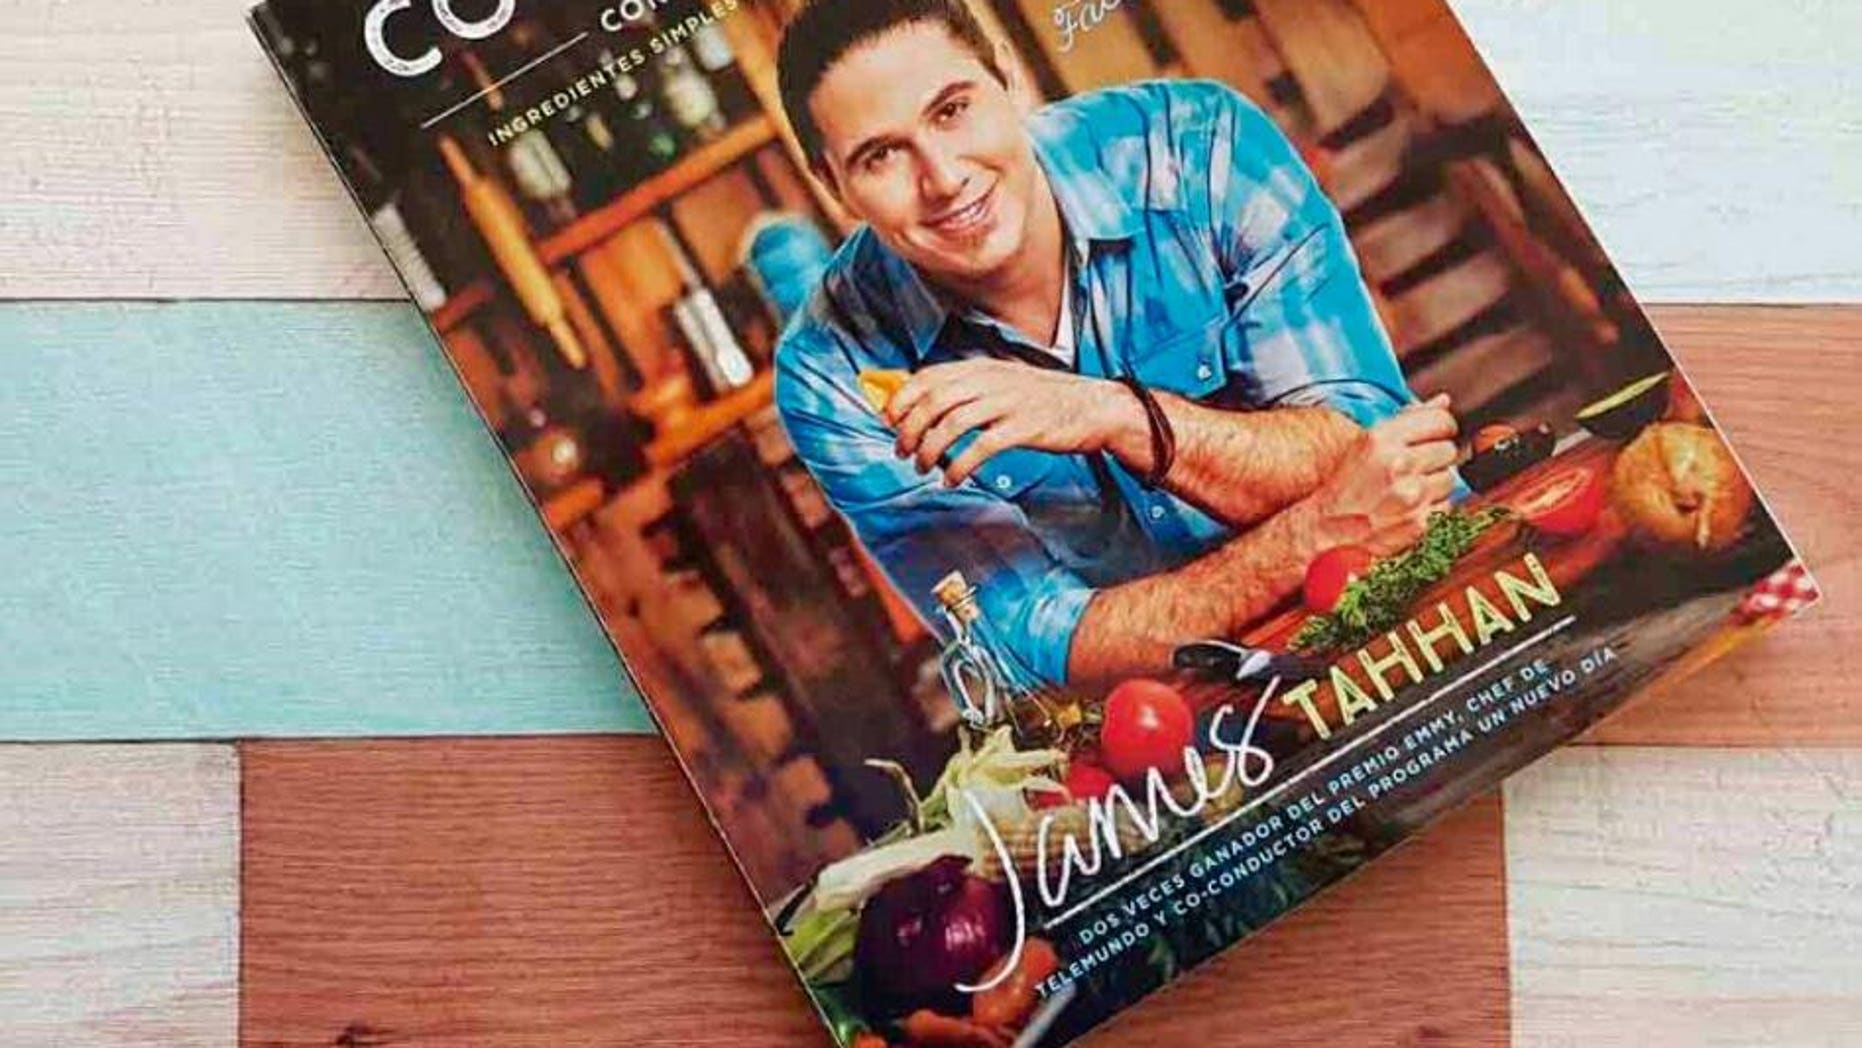 James Tahhan, a celebrity chef, reportedly apologized for a gesture he made while on air.